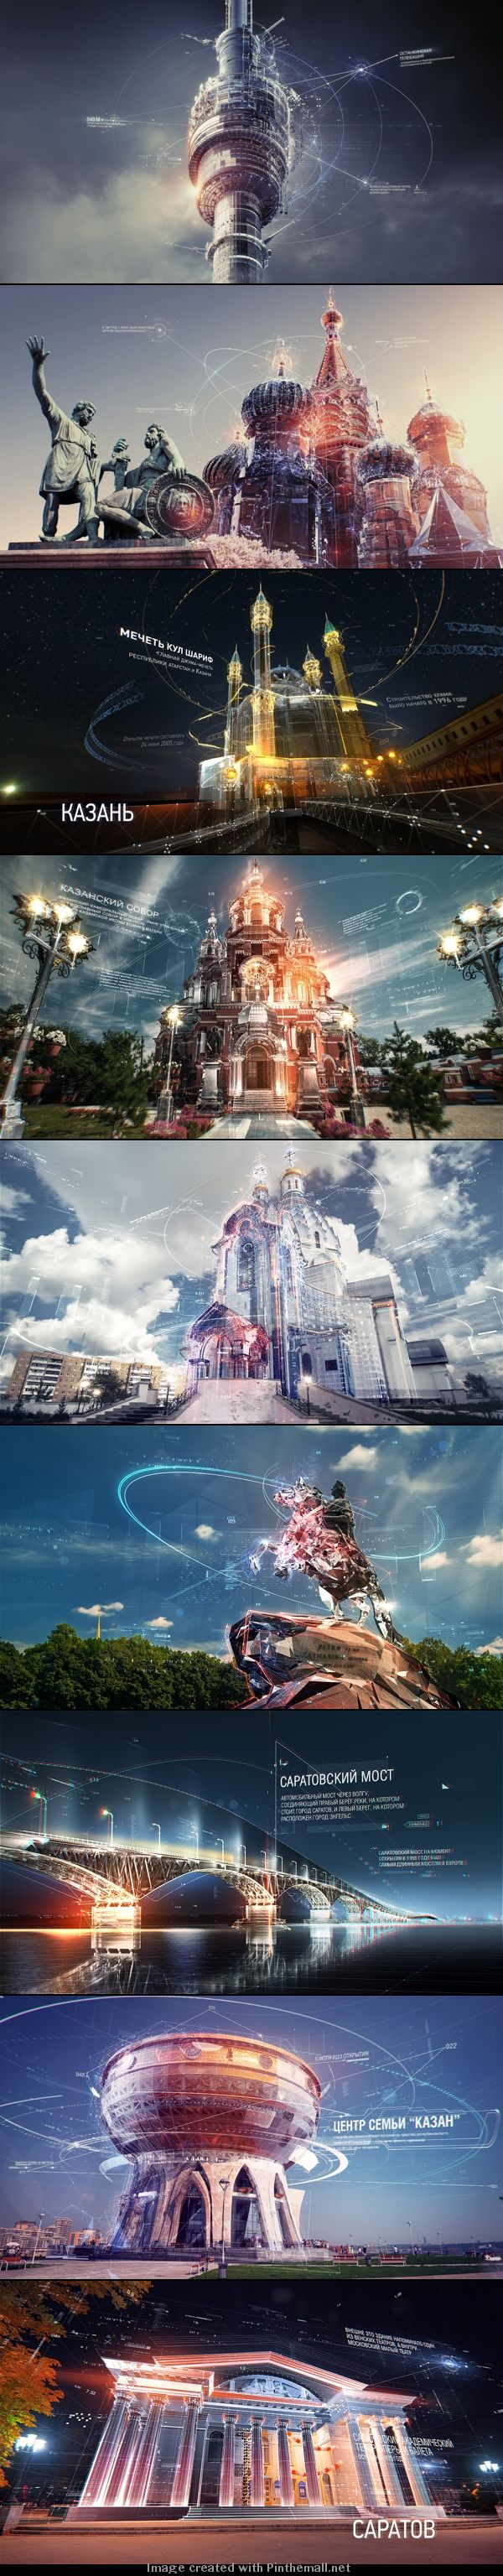 TVC IDs 2013. Stage 1 by N3 Design https://www.behance.net/gallery/TVC-IDs-2013-Stage-1/12681955